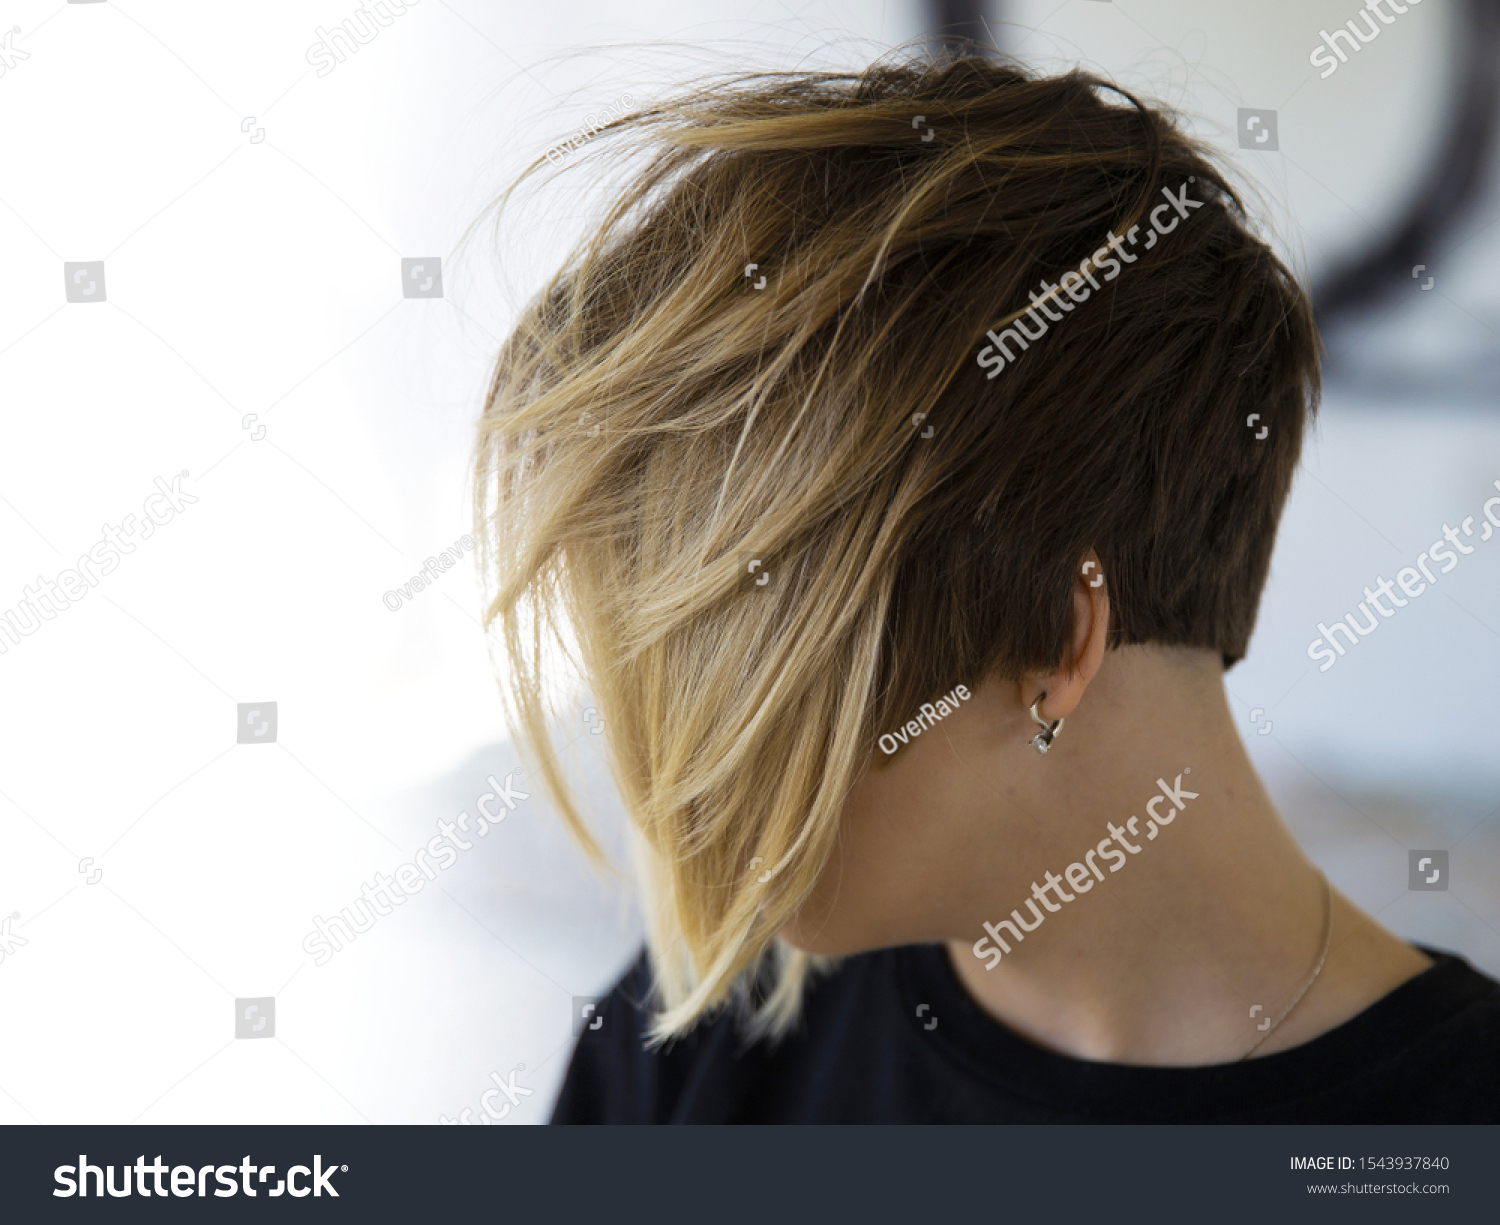 Women's haircut with active texture and disconnected zones. #1543937840